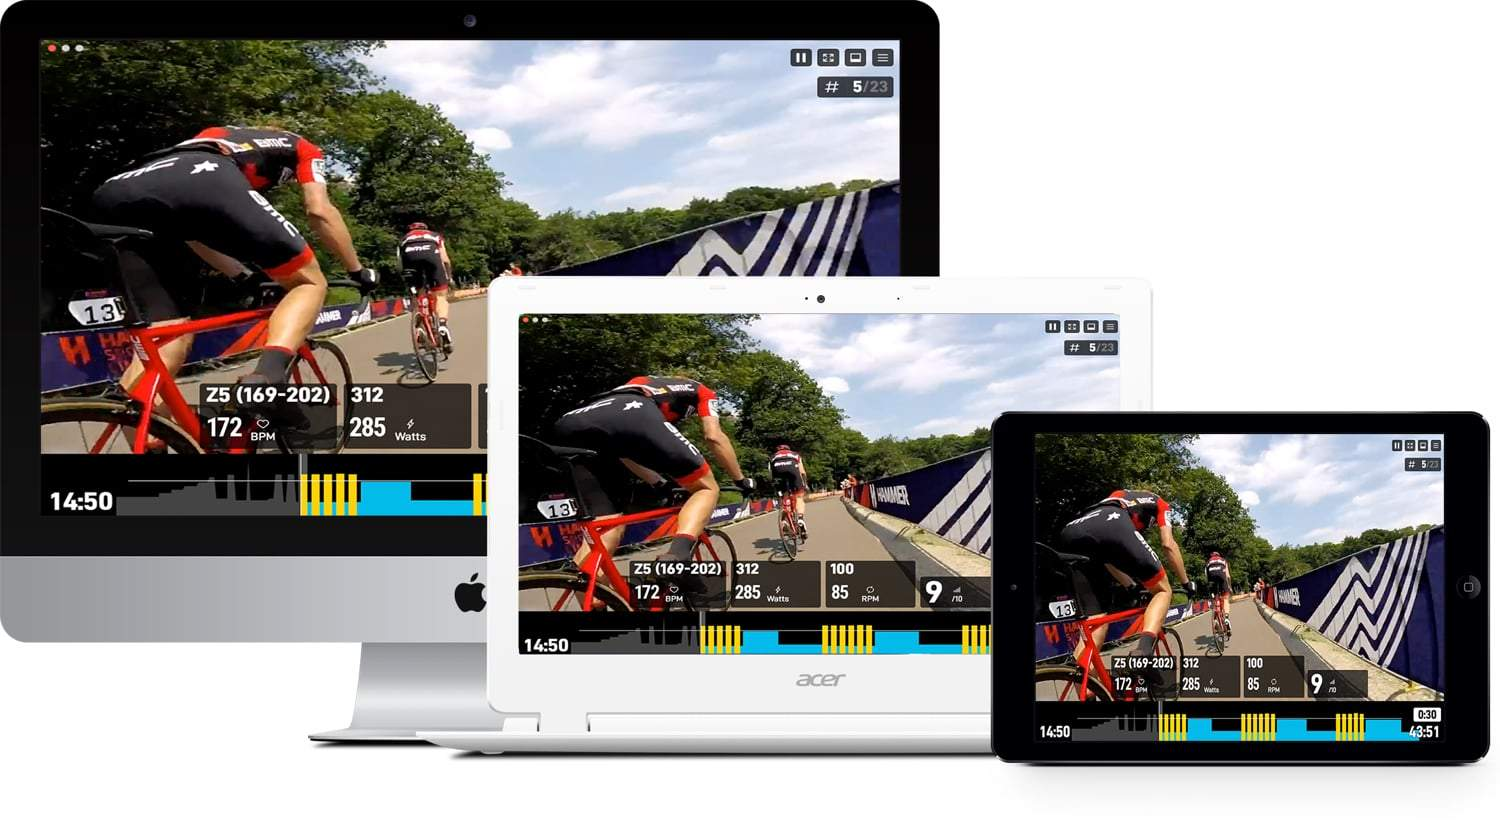 The Sufferfest to be acquired by Wahoo for an undisclosed amount